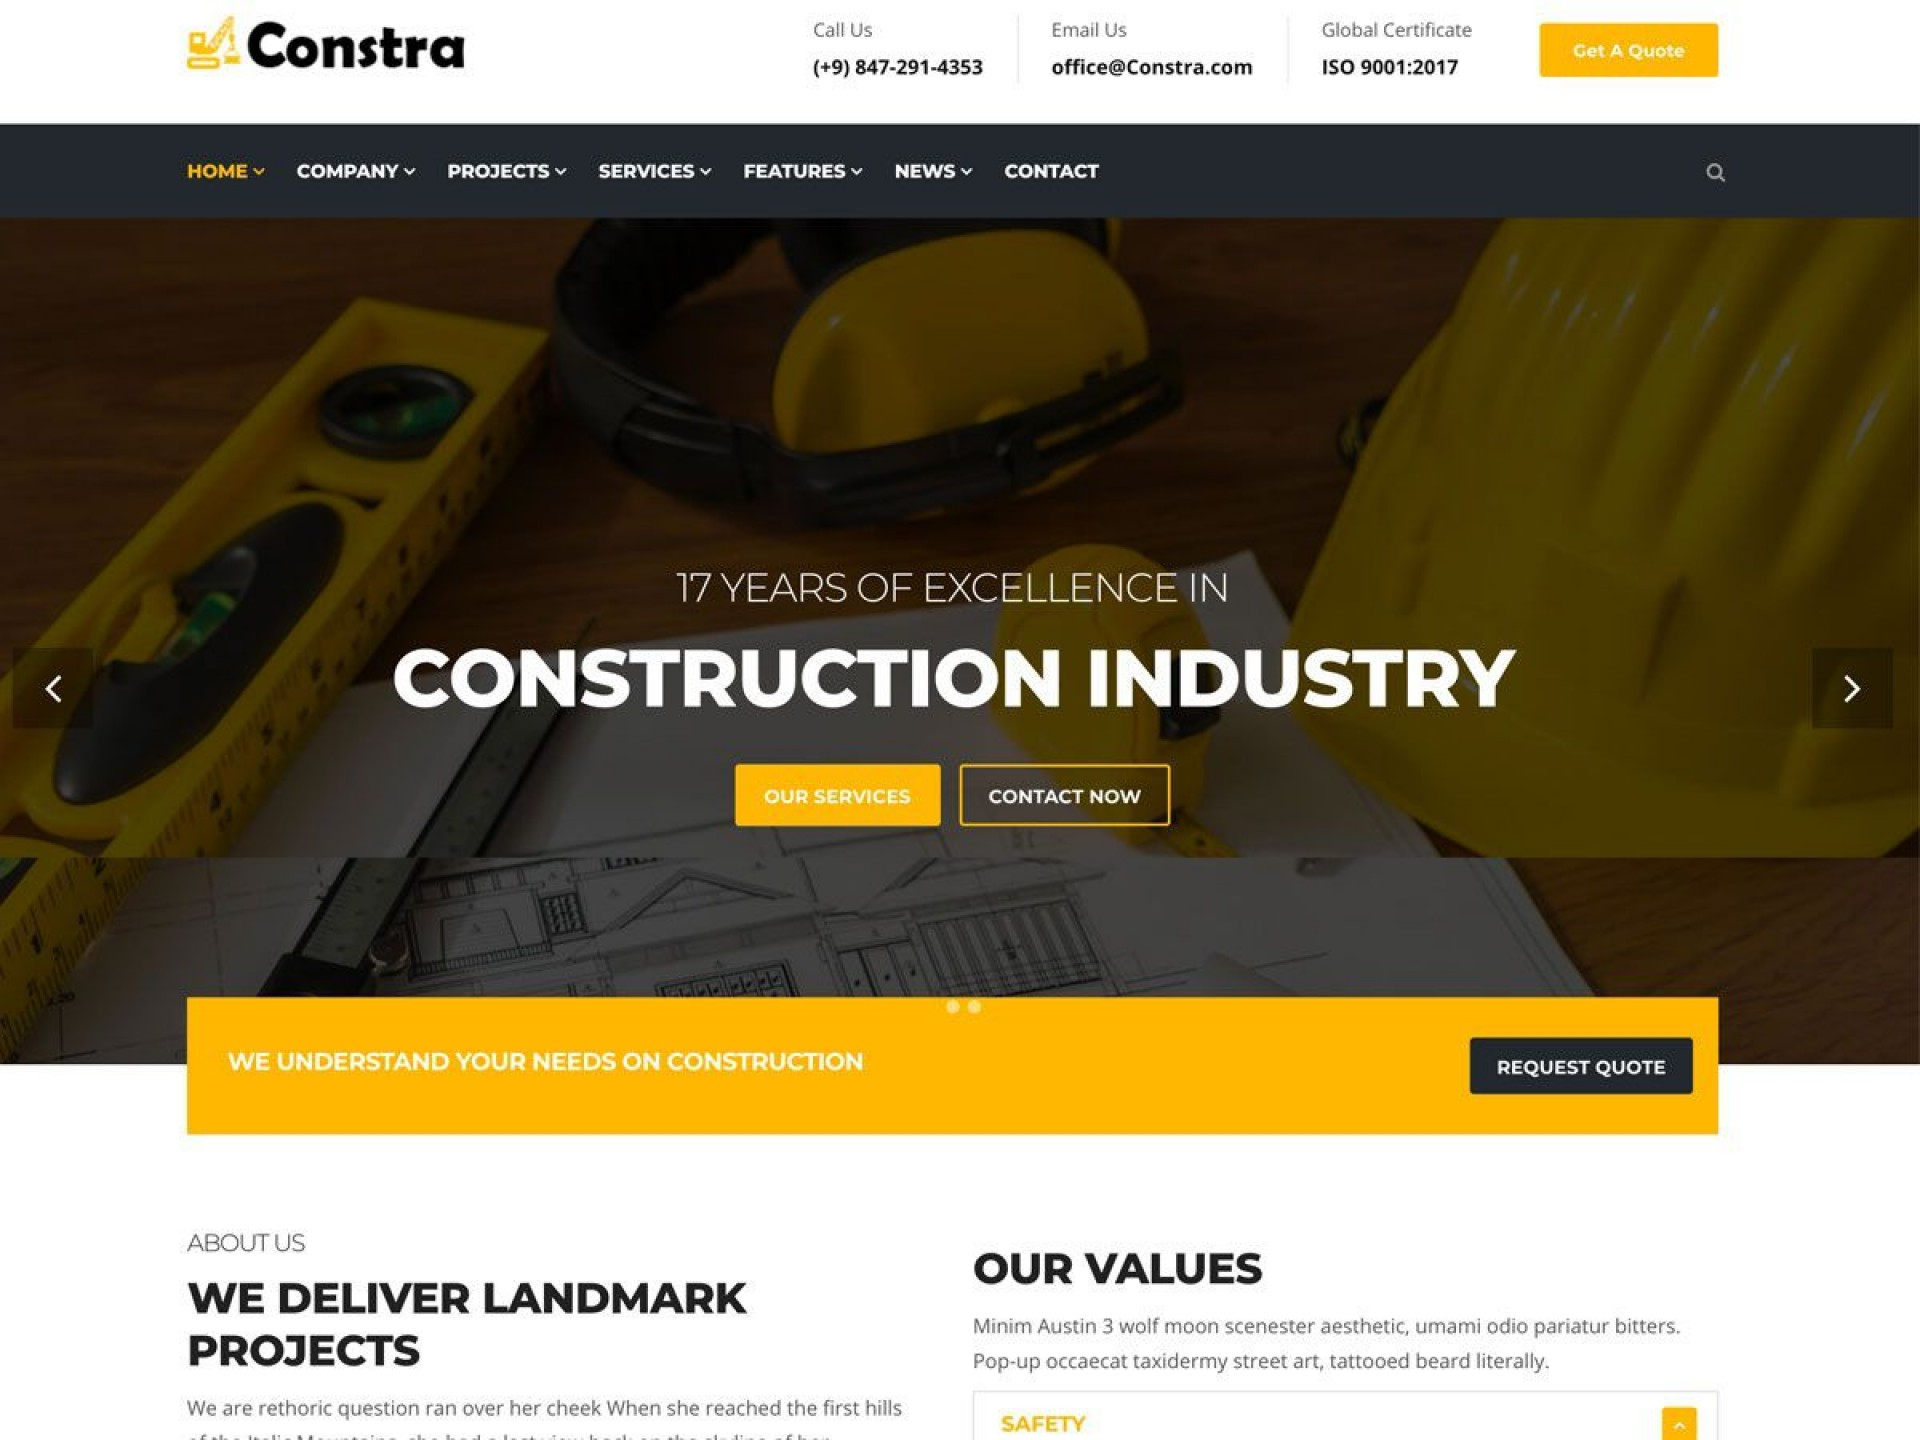 004 Unusual Bootstrap Responsive Professional Website Template Free Download Highest Quality 1920